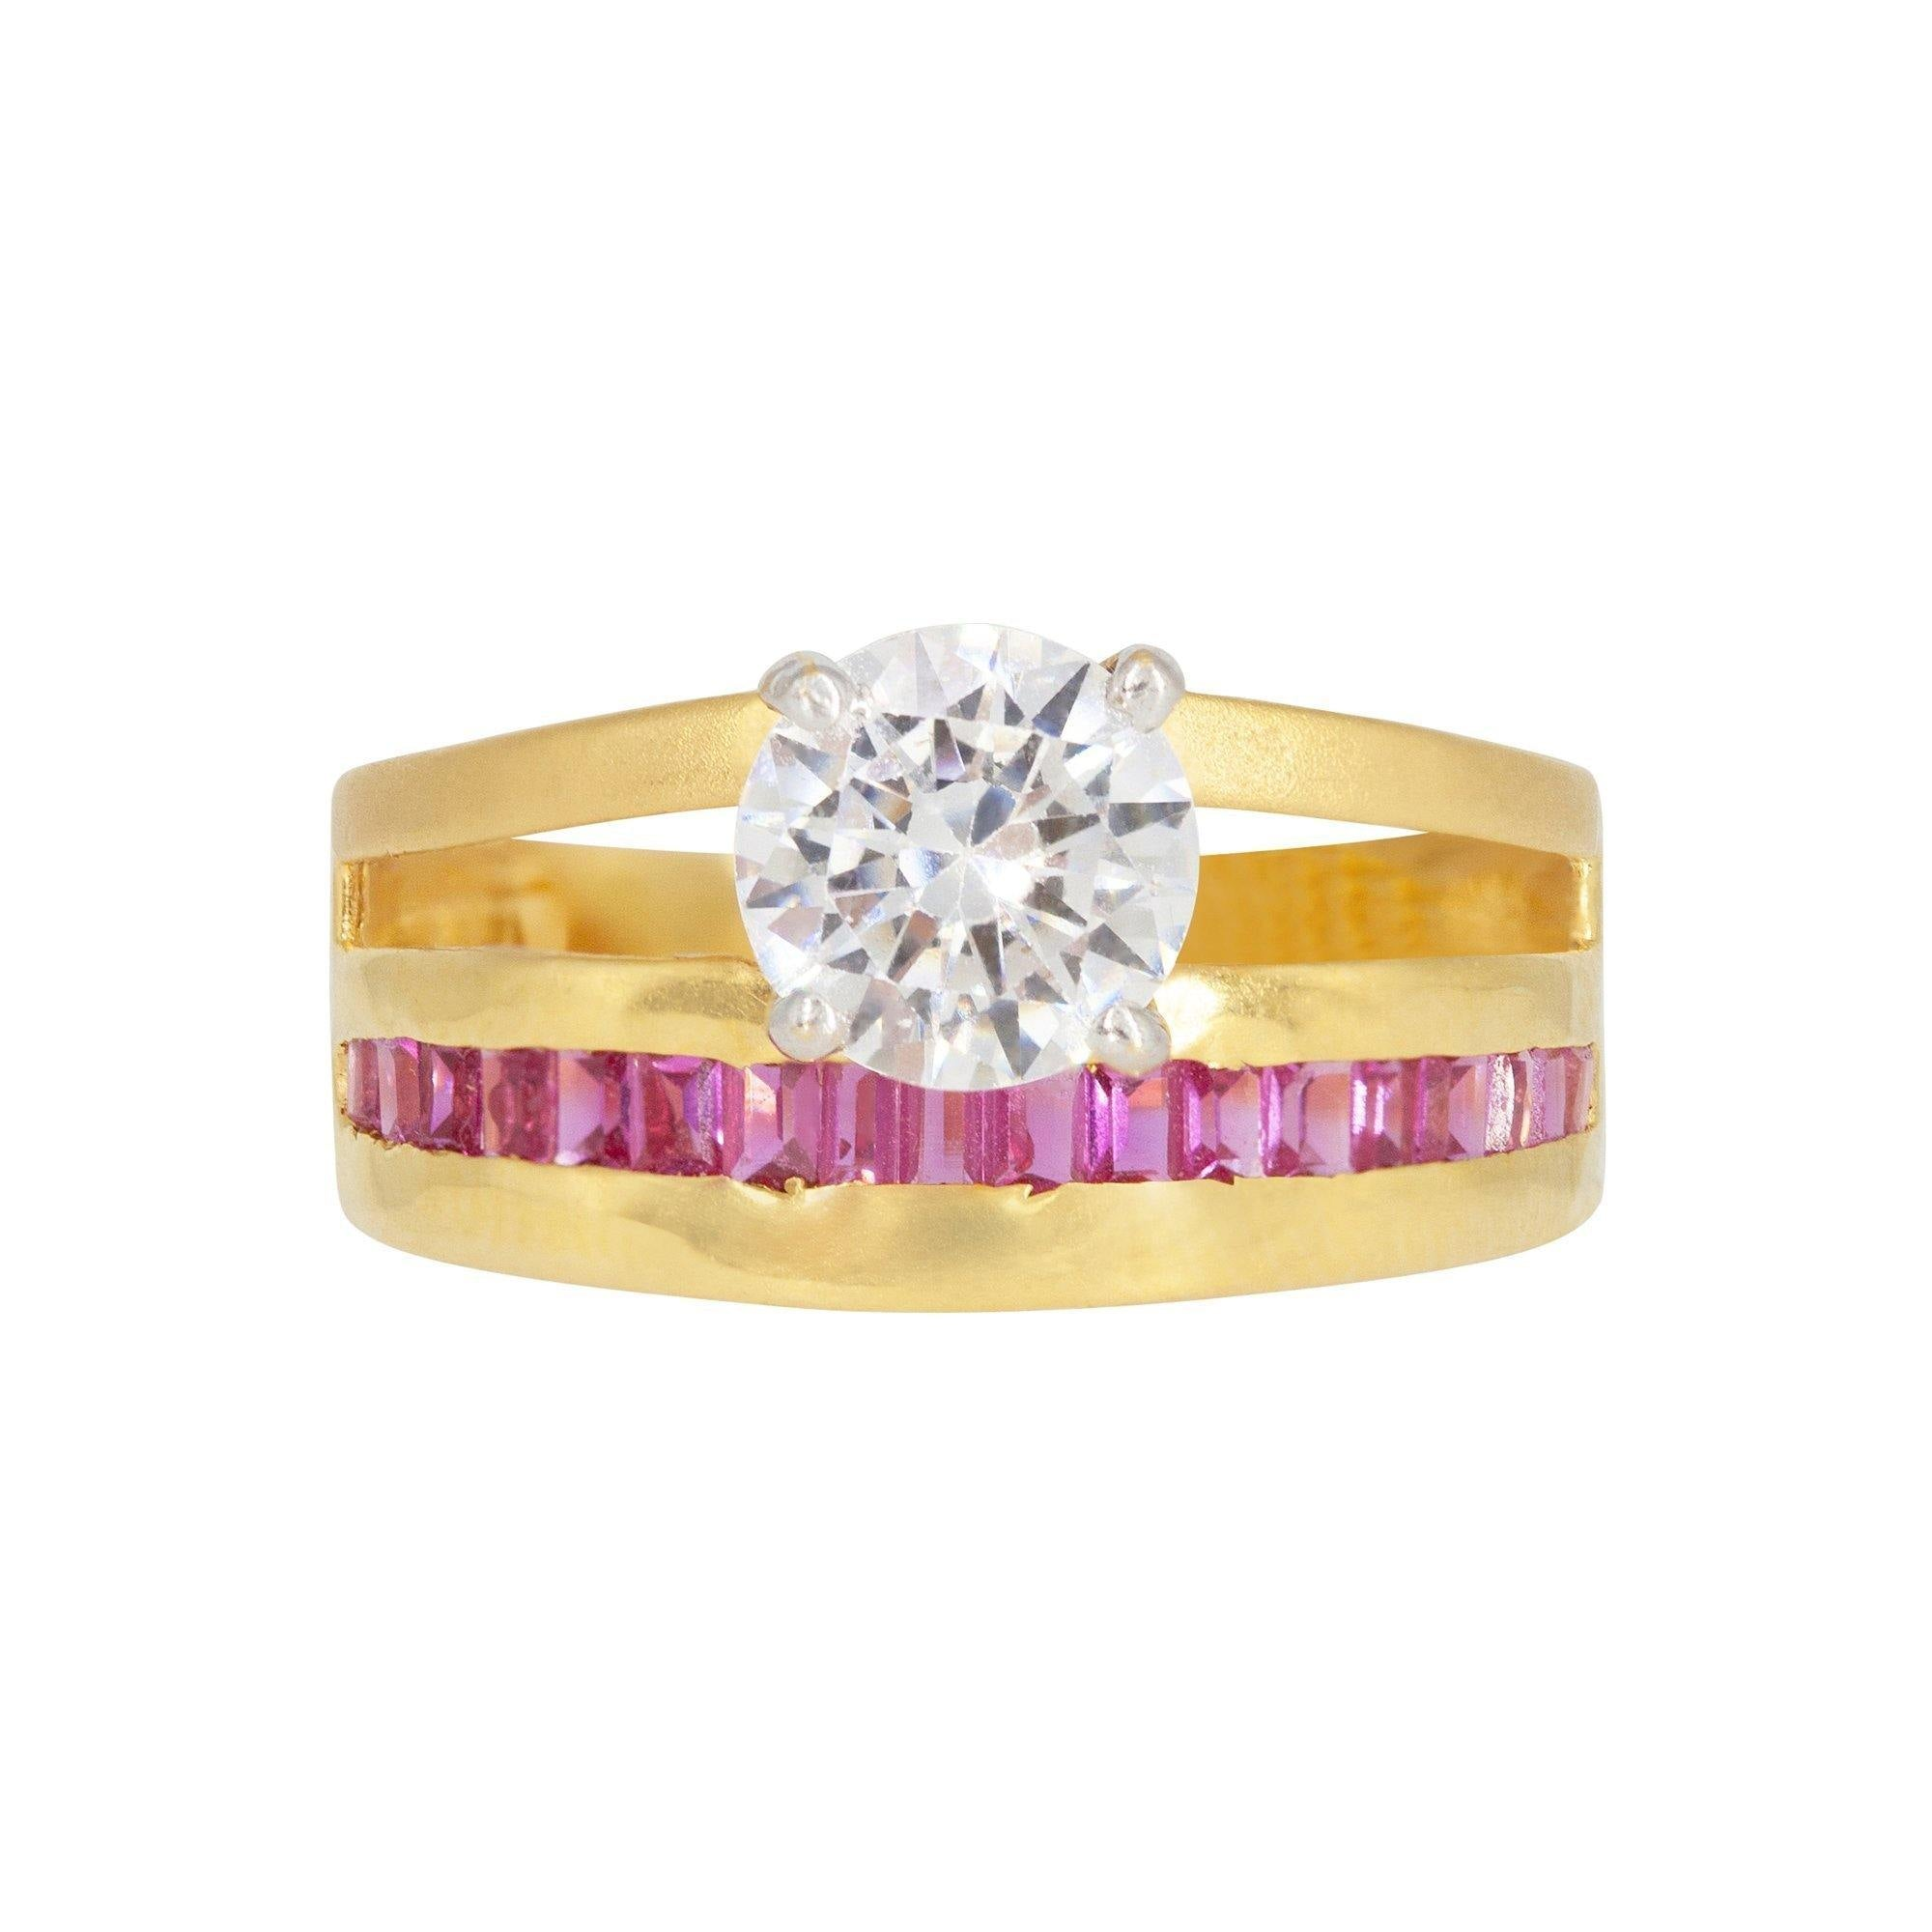 3d7b941741e 22K Yellow Gold Ring W/ Cubic Zirconia Solitaire & Ruby Baguettes ...